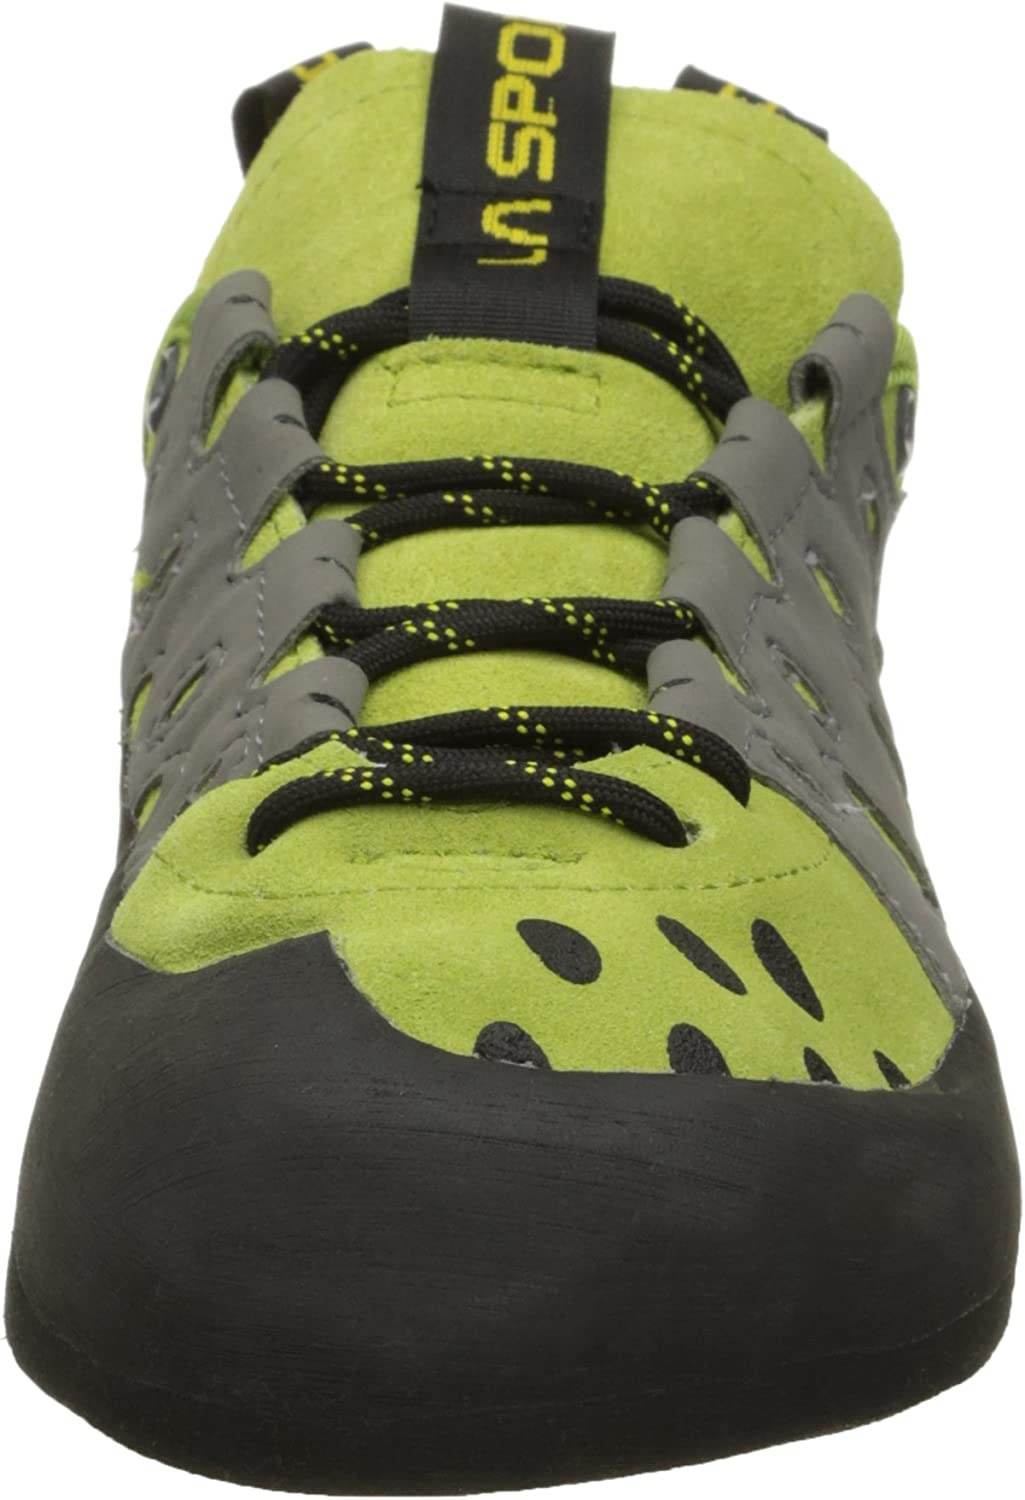 La Sportiva Mens TarantuLace Performance Rock Climbing Shoe